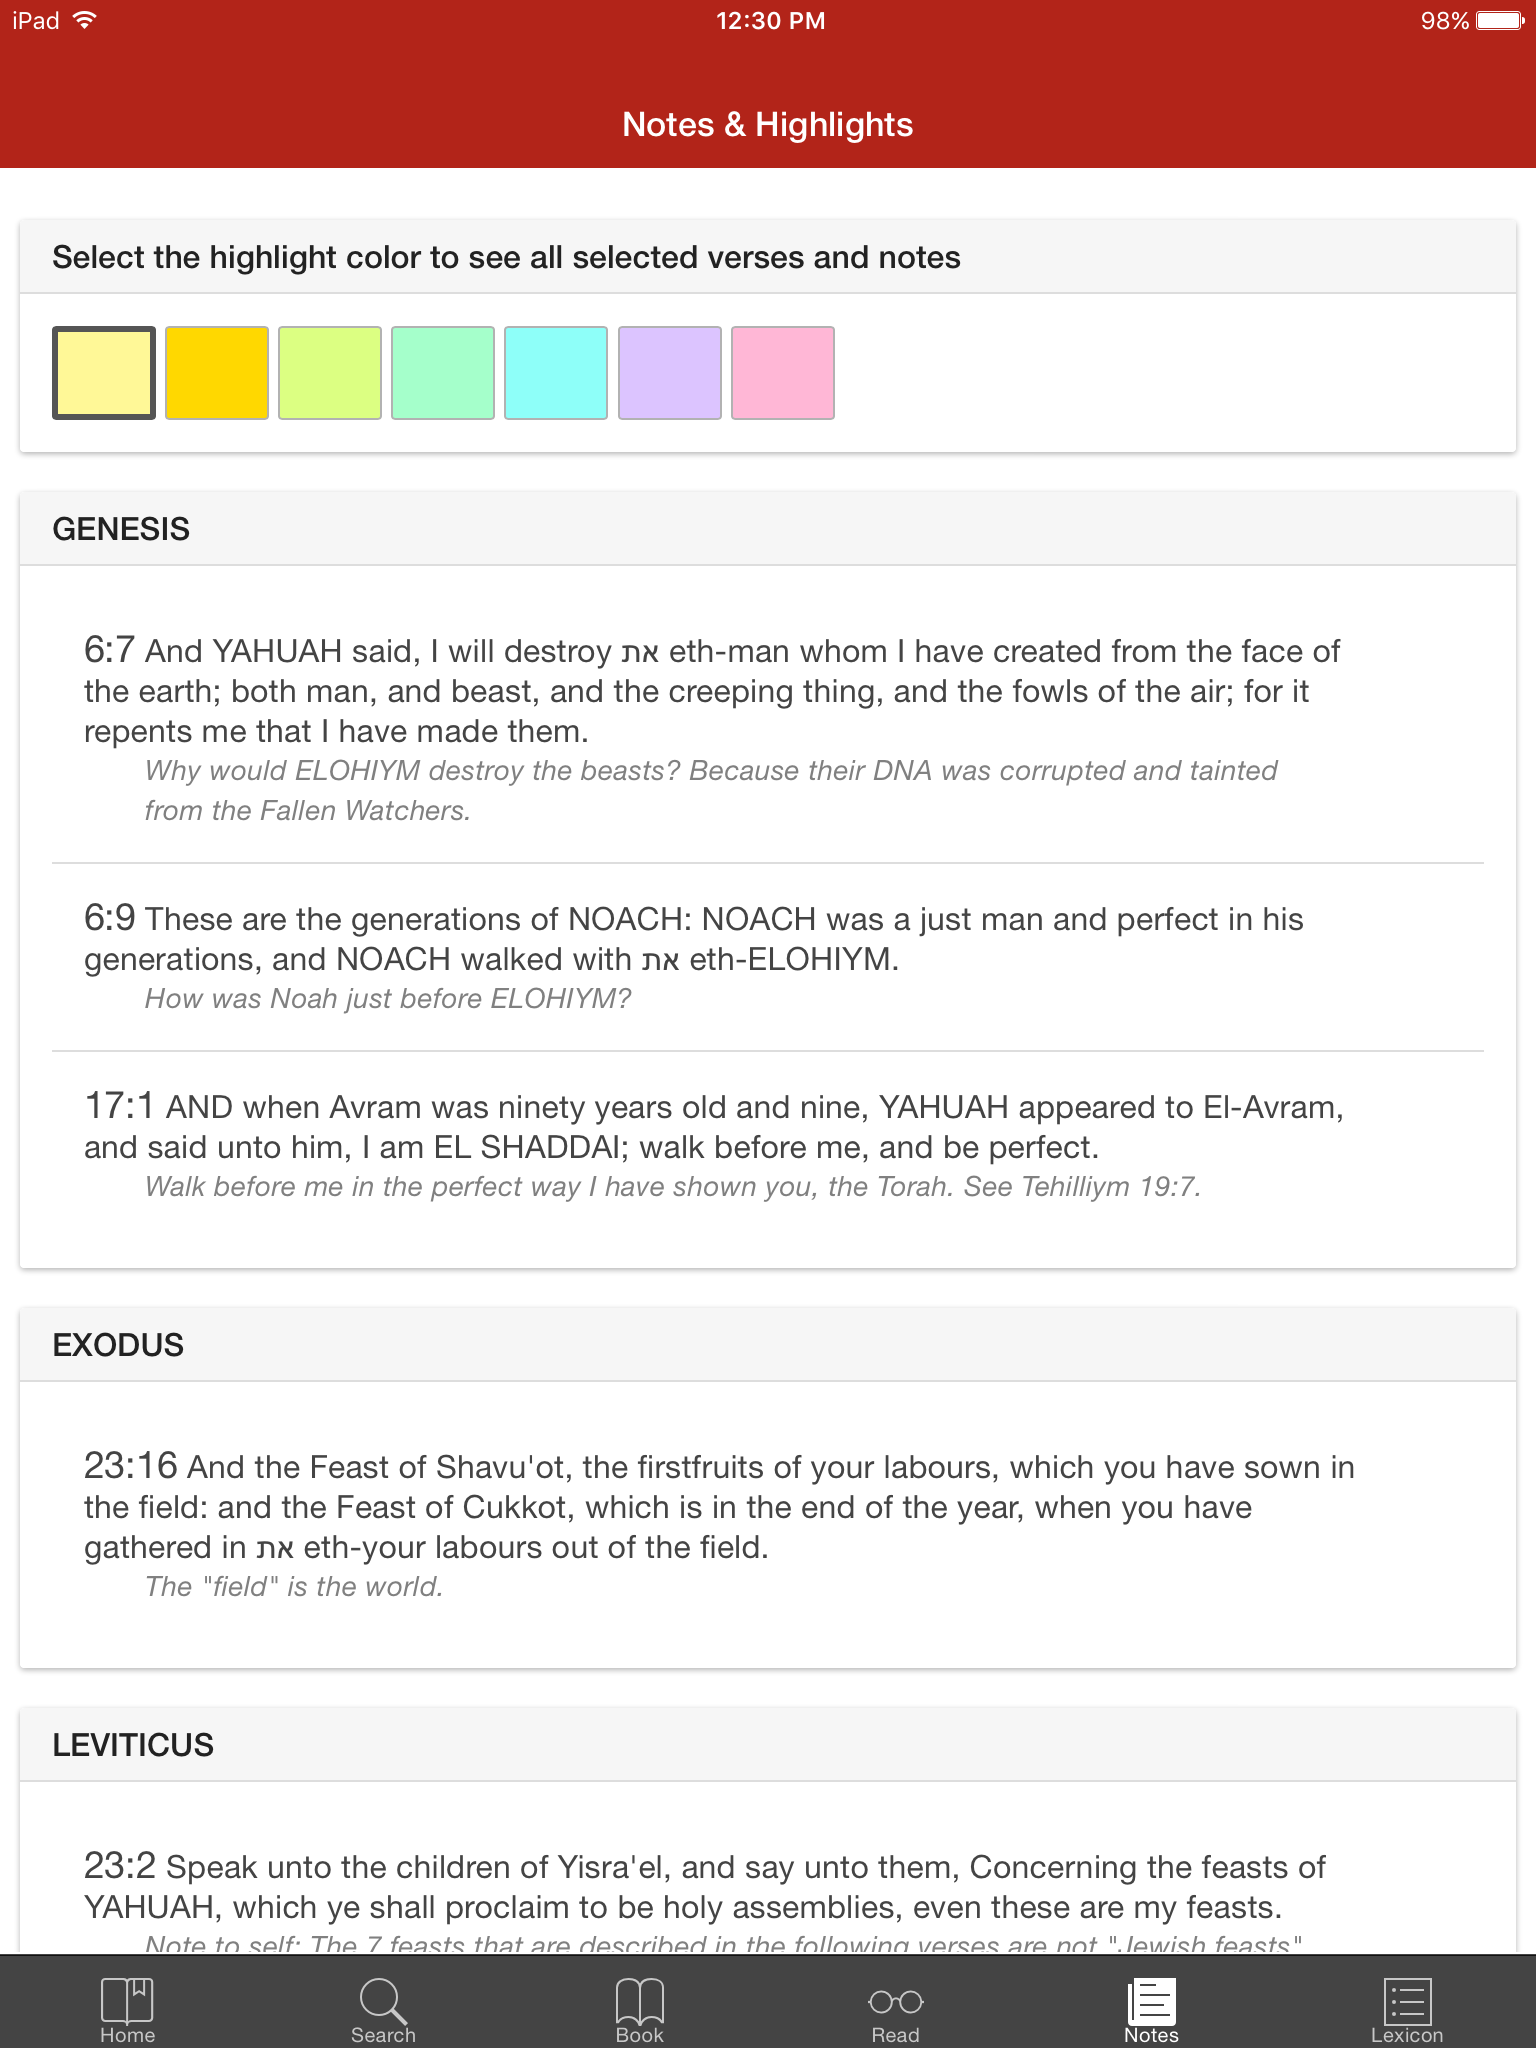 Eth CEPHER Mobile App: Color Categorization of Notes